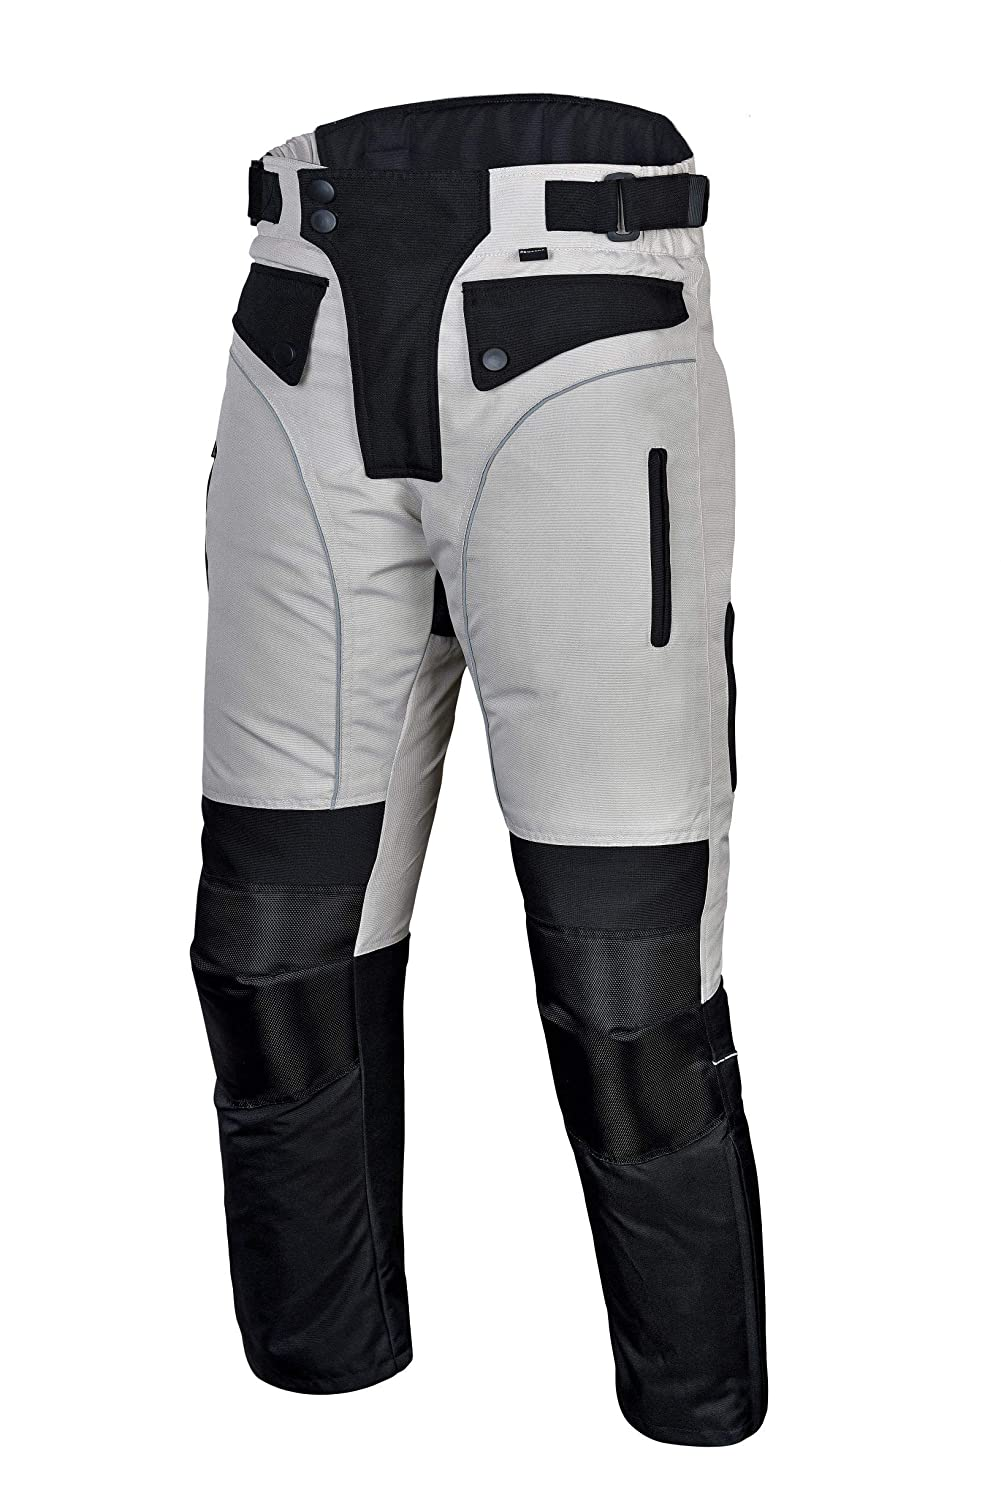 Mens Motorcycle Biker Waterproof M Windproof Riding Pants Black with Removable CE Armor PT1